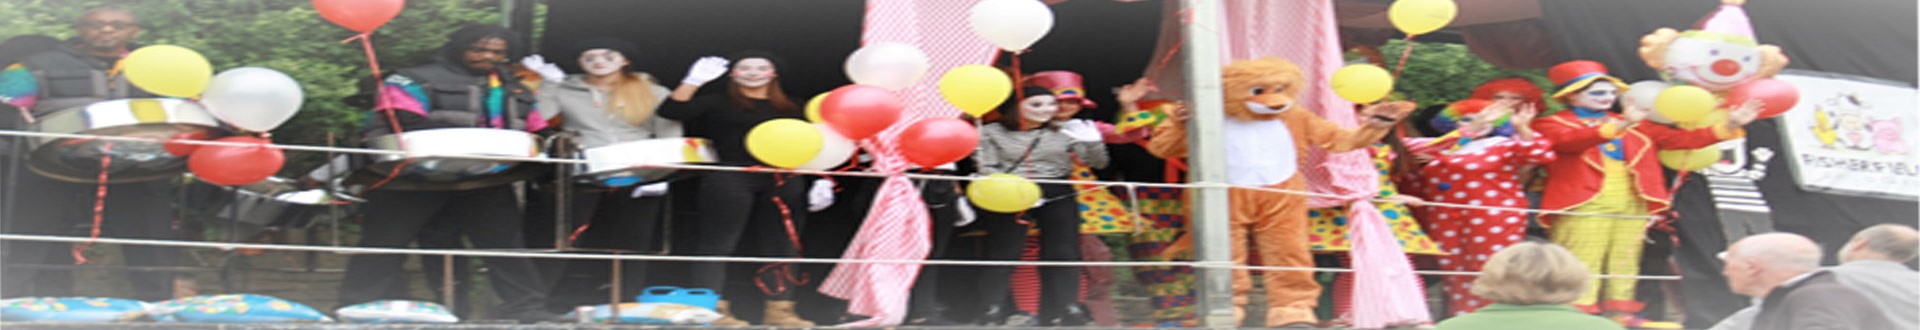 Fisherfield Childcare dressed as clowns waving